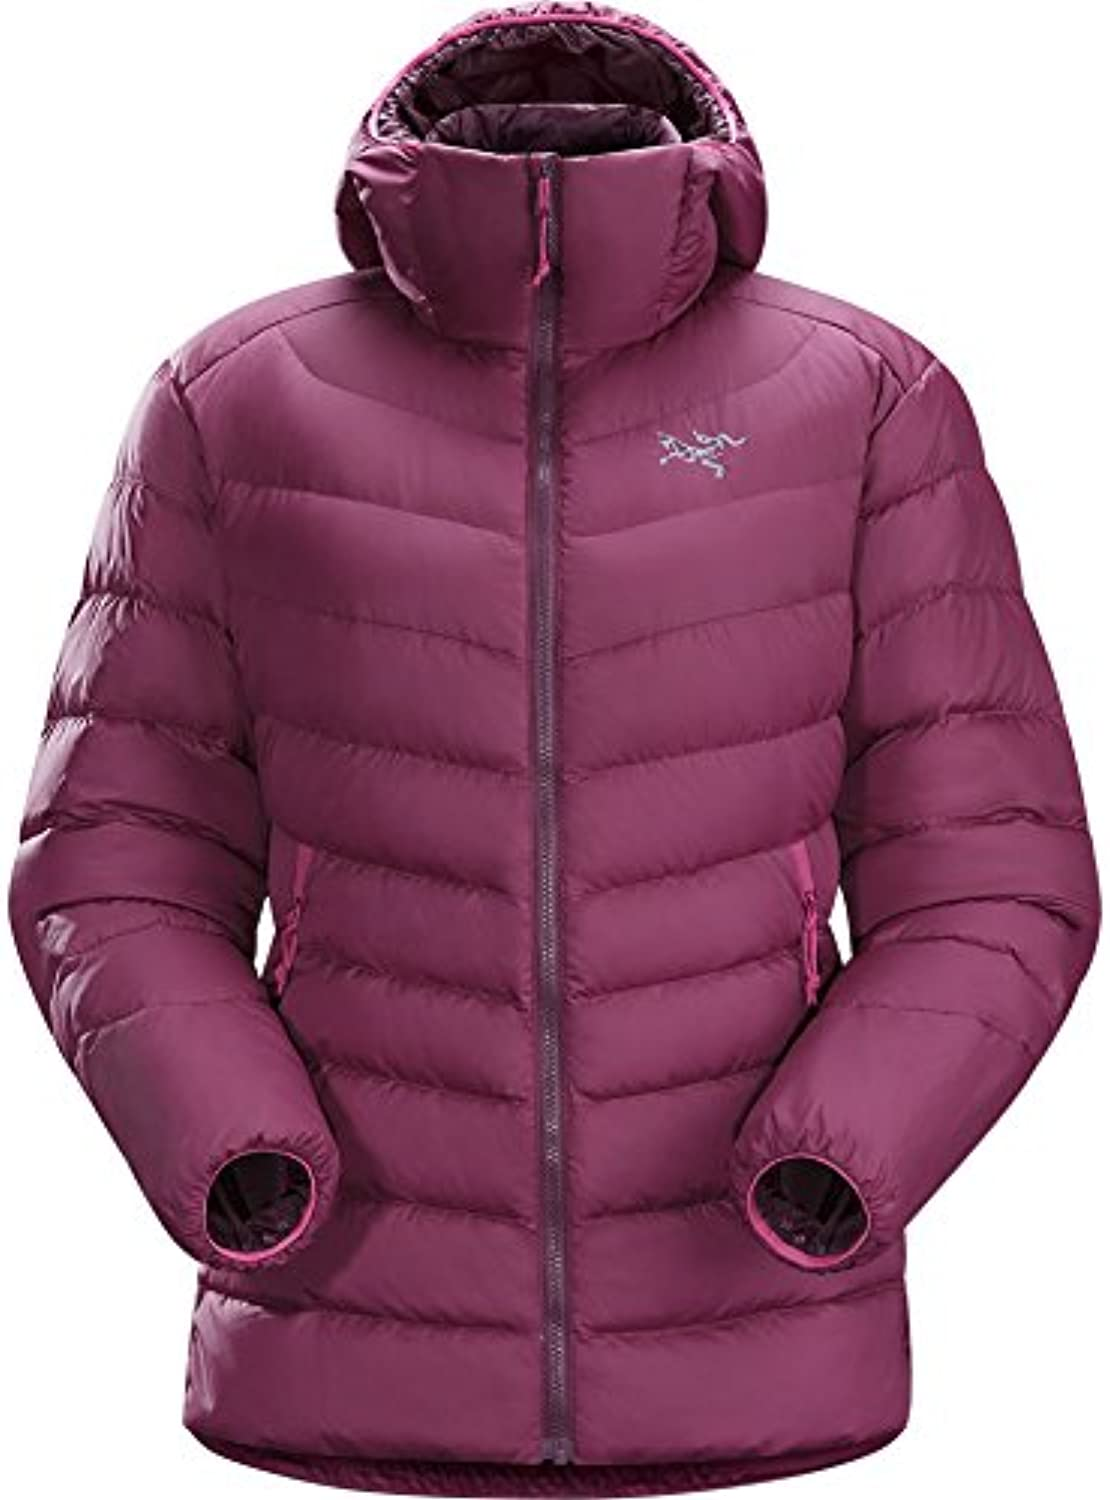 Arc'teryx Thorium AR Jacket with Hood, for Women, Women